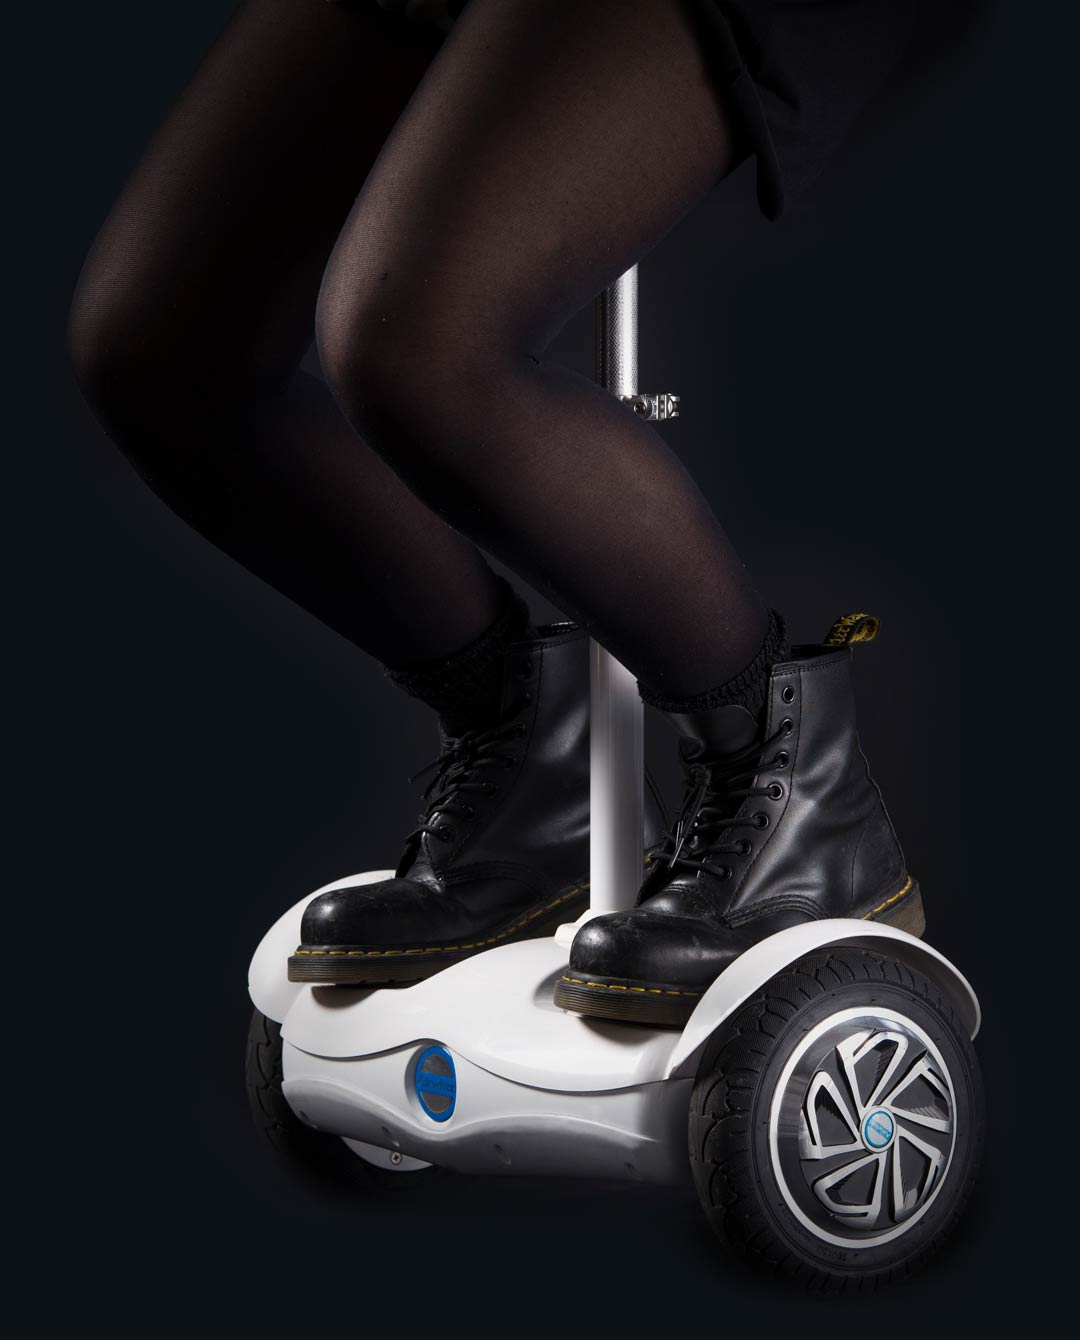 Airwheel S6 dark backround